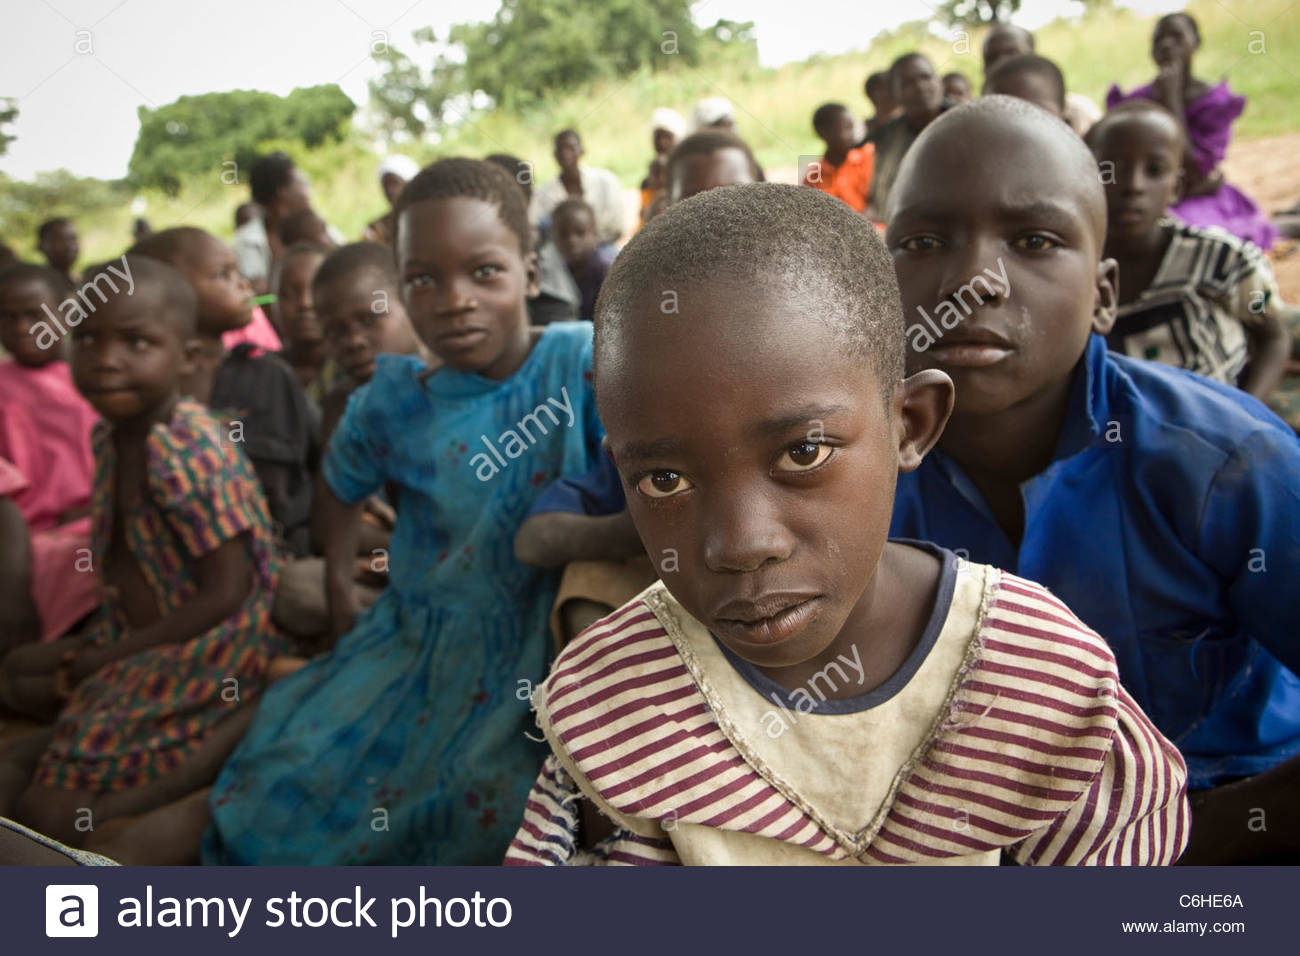 Group of children at an outdoor school at a refugee camp - Stock Image